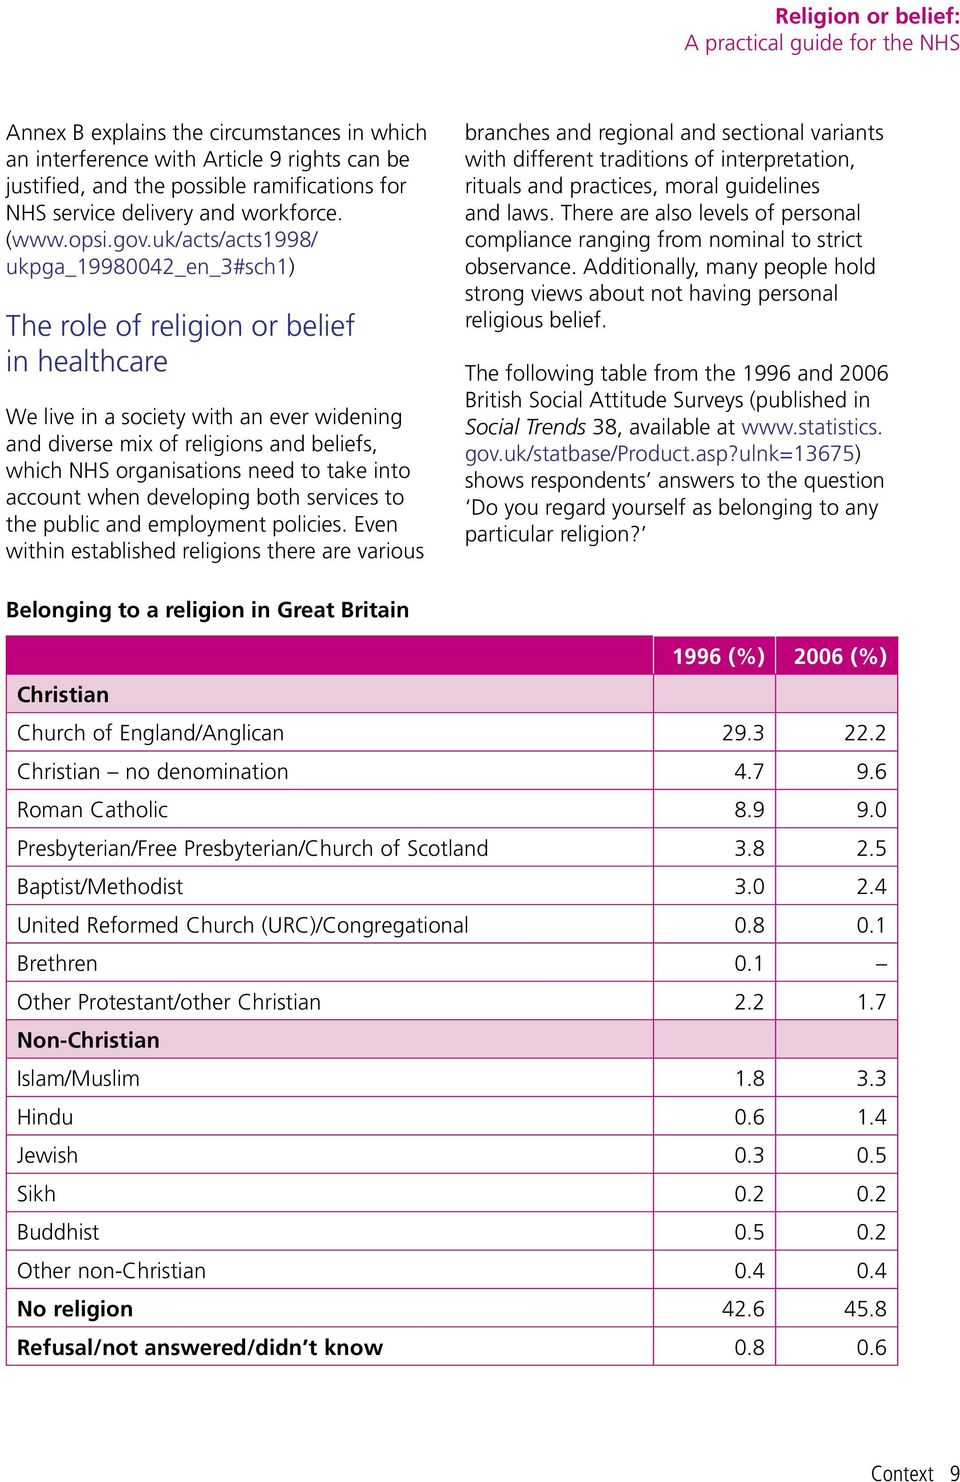 uk/acts/acts1998/ ukpga_19980042_en_3#sch1) The role of religion or belief in healthcare We live in a society with an ever widening and diverse mix of religions and beliefs, which NHS organisations